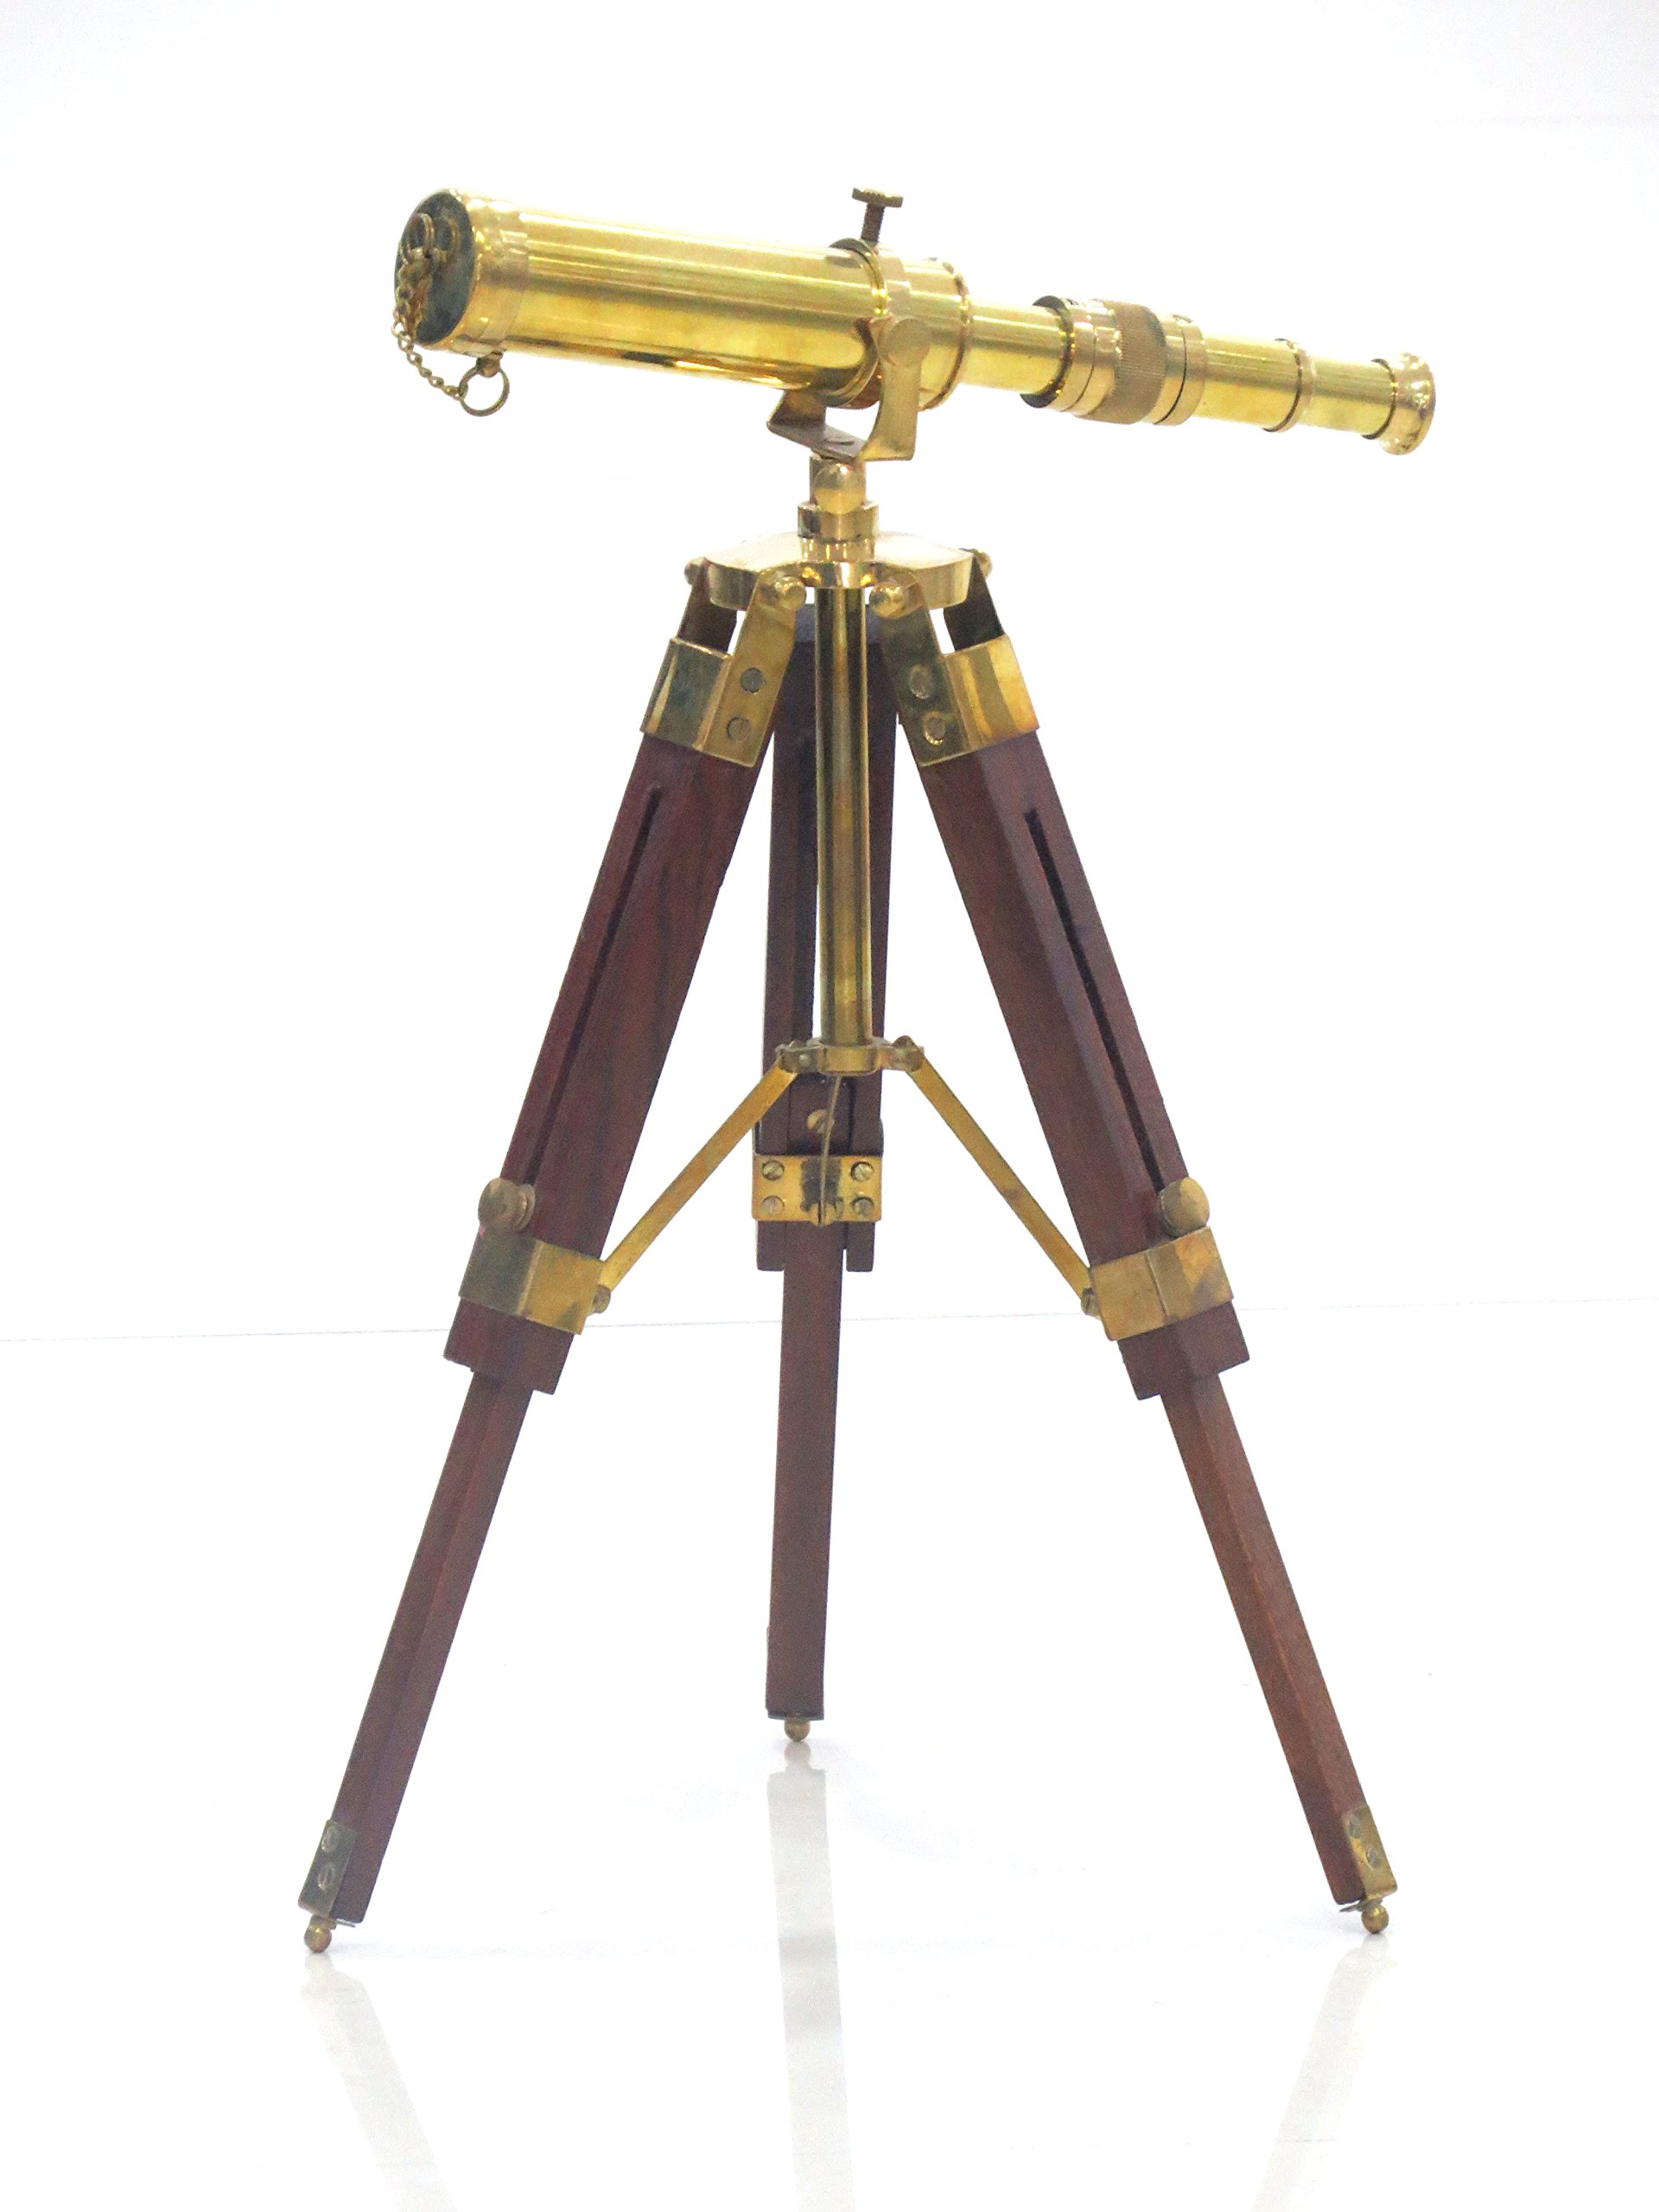 Vintage Brass Telescope on Tripod Stand use DF Lens Antique Desktop Telescope for Home Decor & Table Accessory Nautical Spyglass Telescope for Navy and Outdoor Adventures. by NAUTICALMART